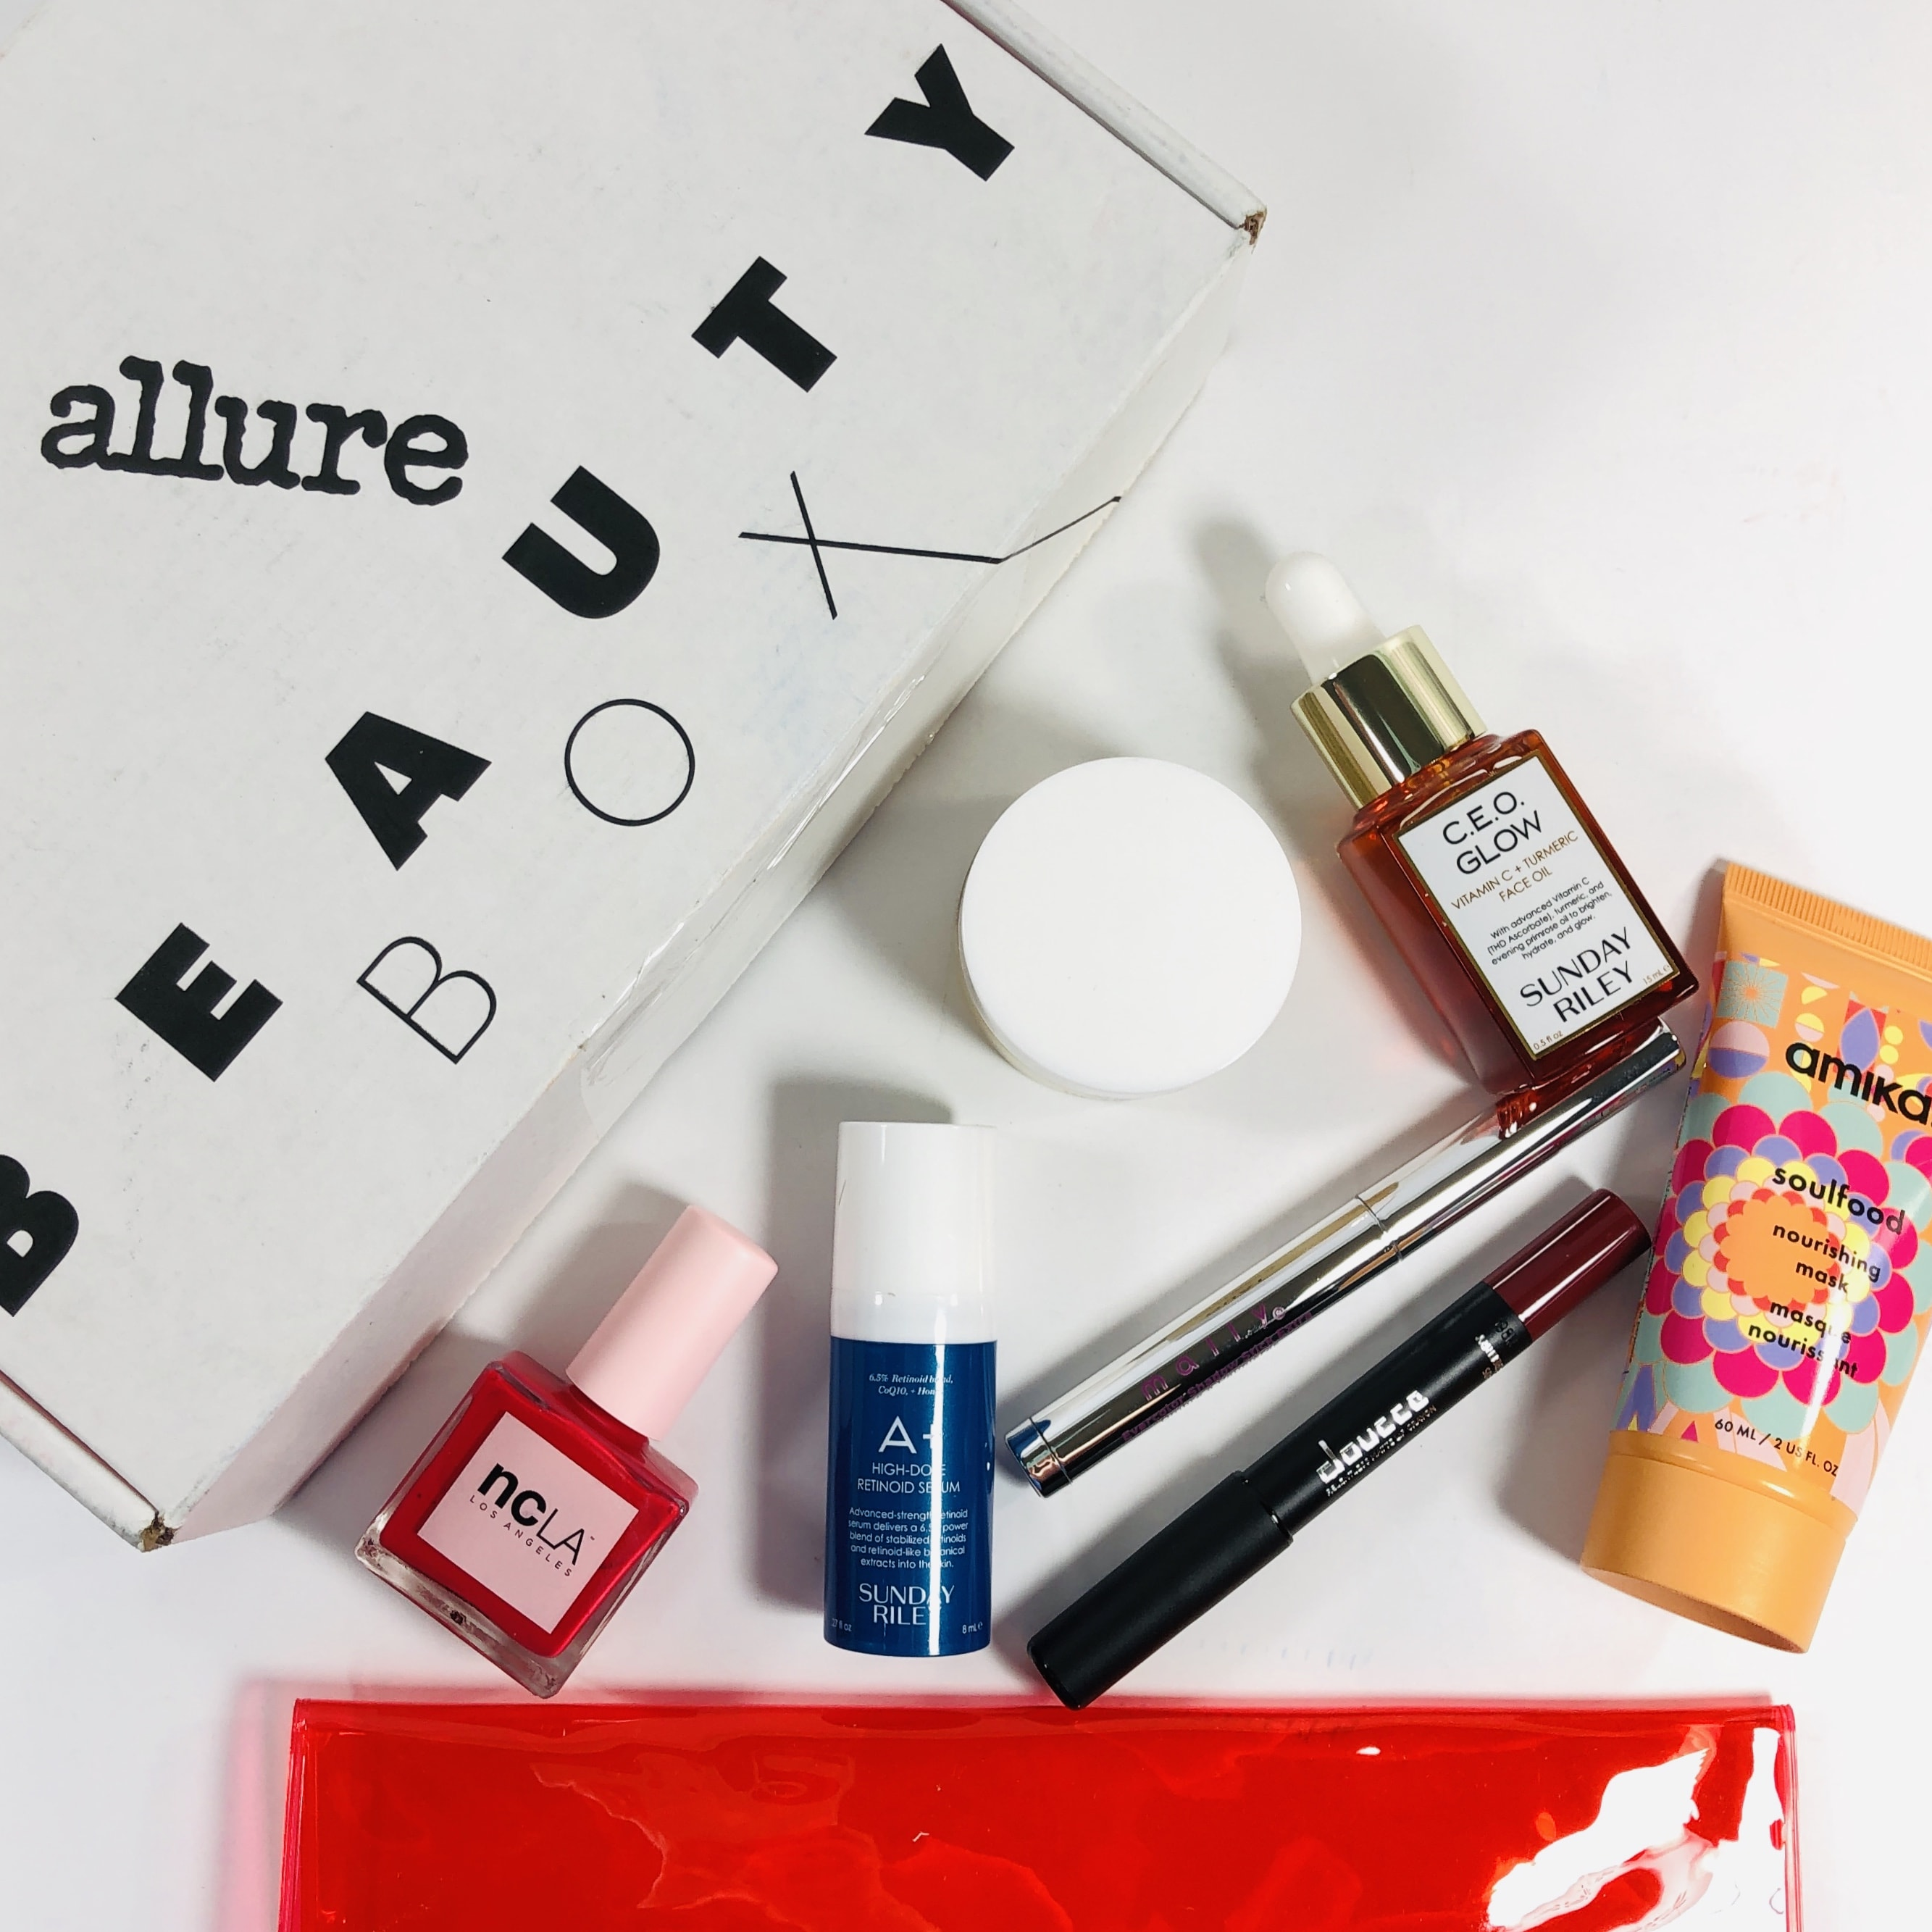 Allure Best Of Beauty 2020.Best Beauty Subscription Boxes Of 2020 Hello Subscription